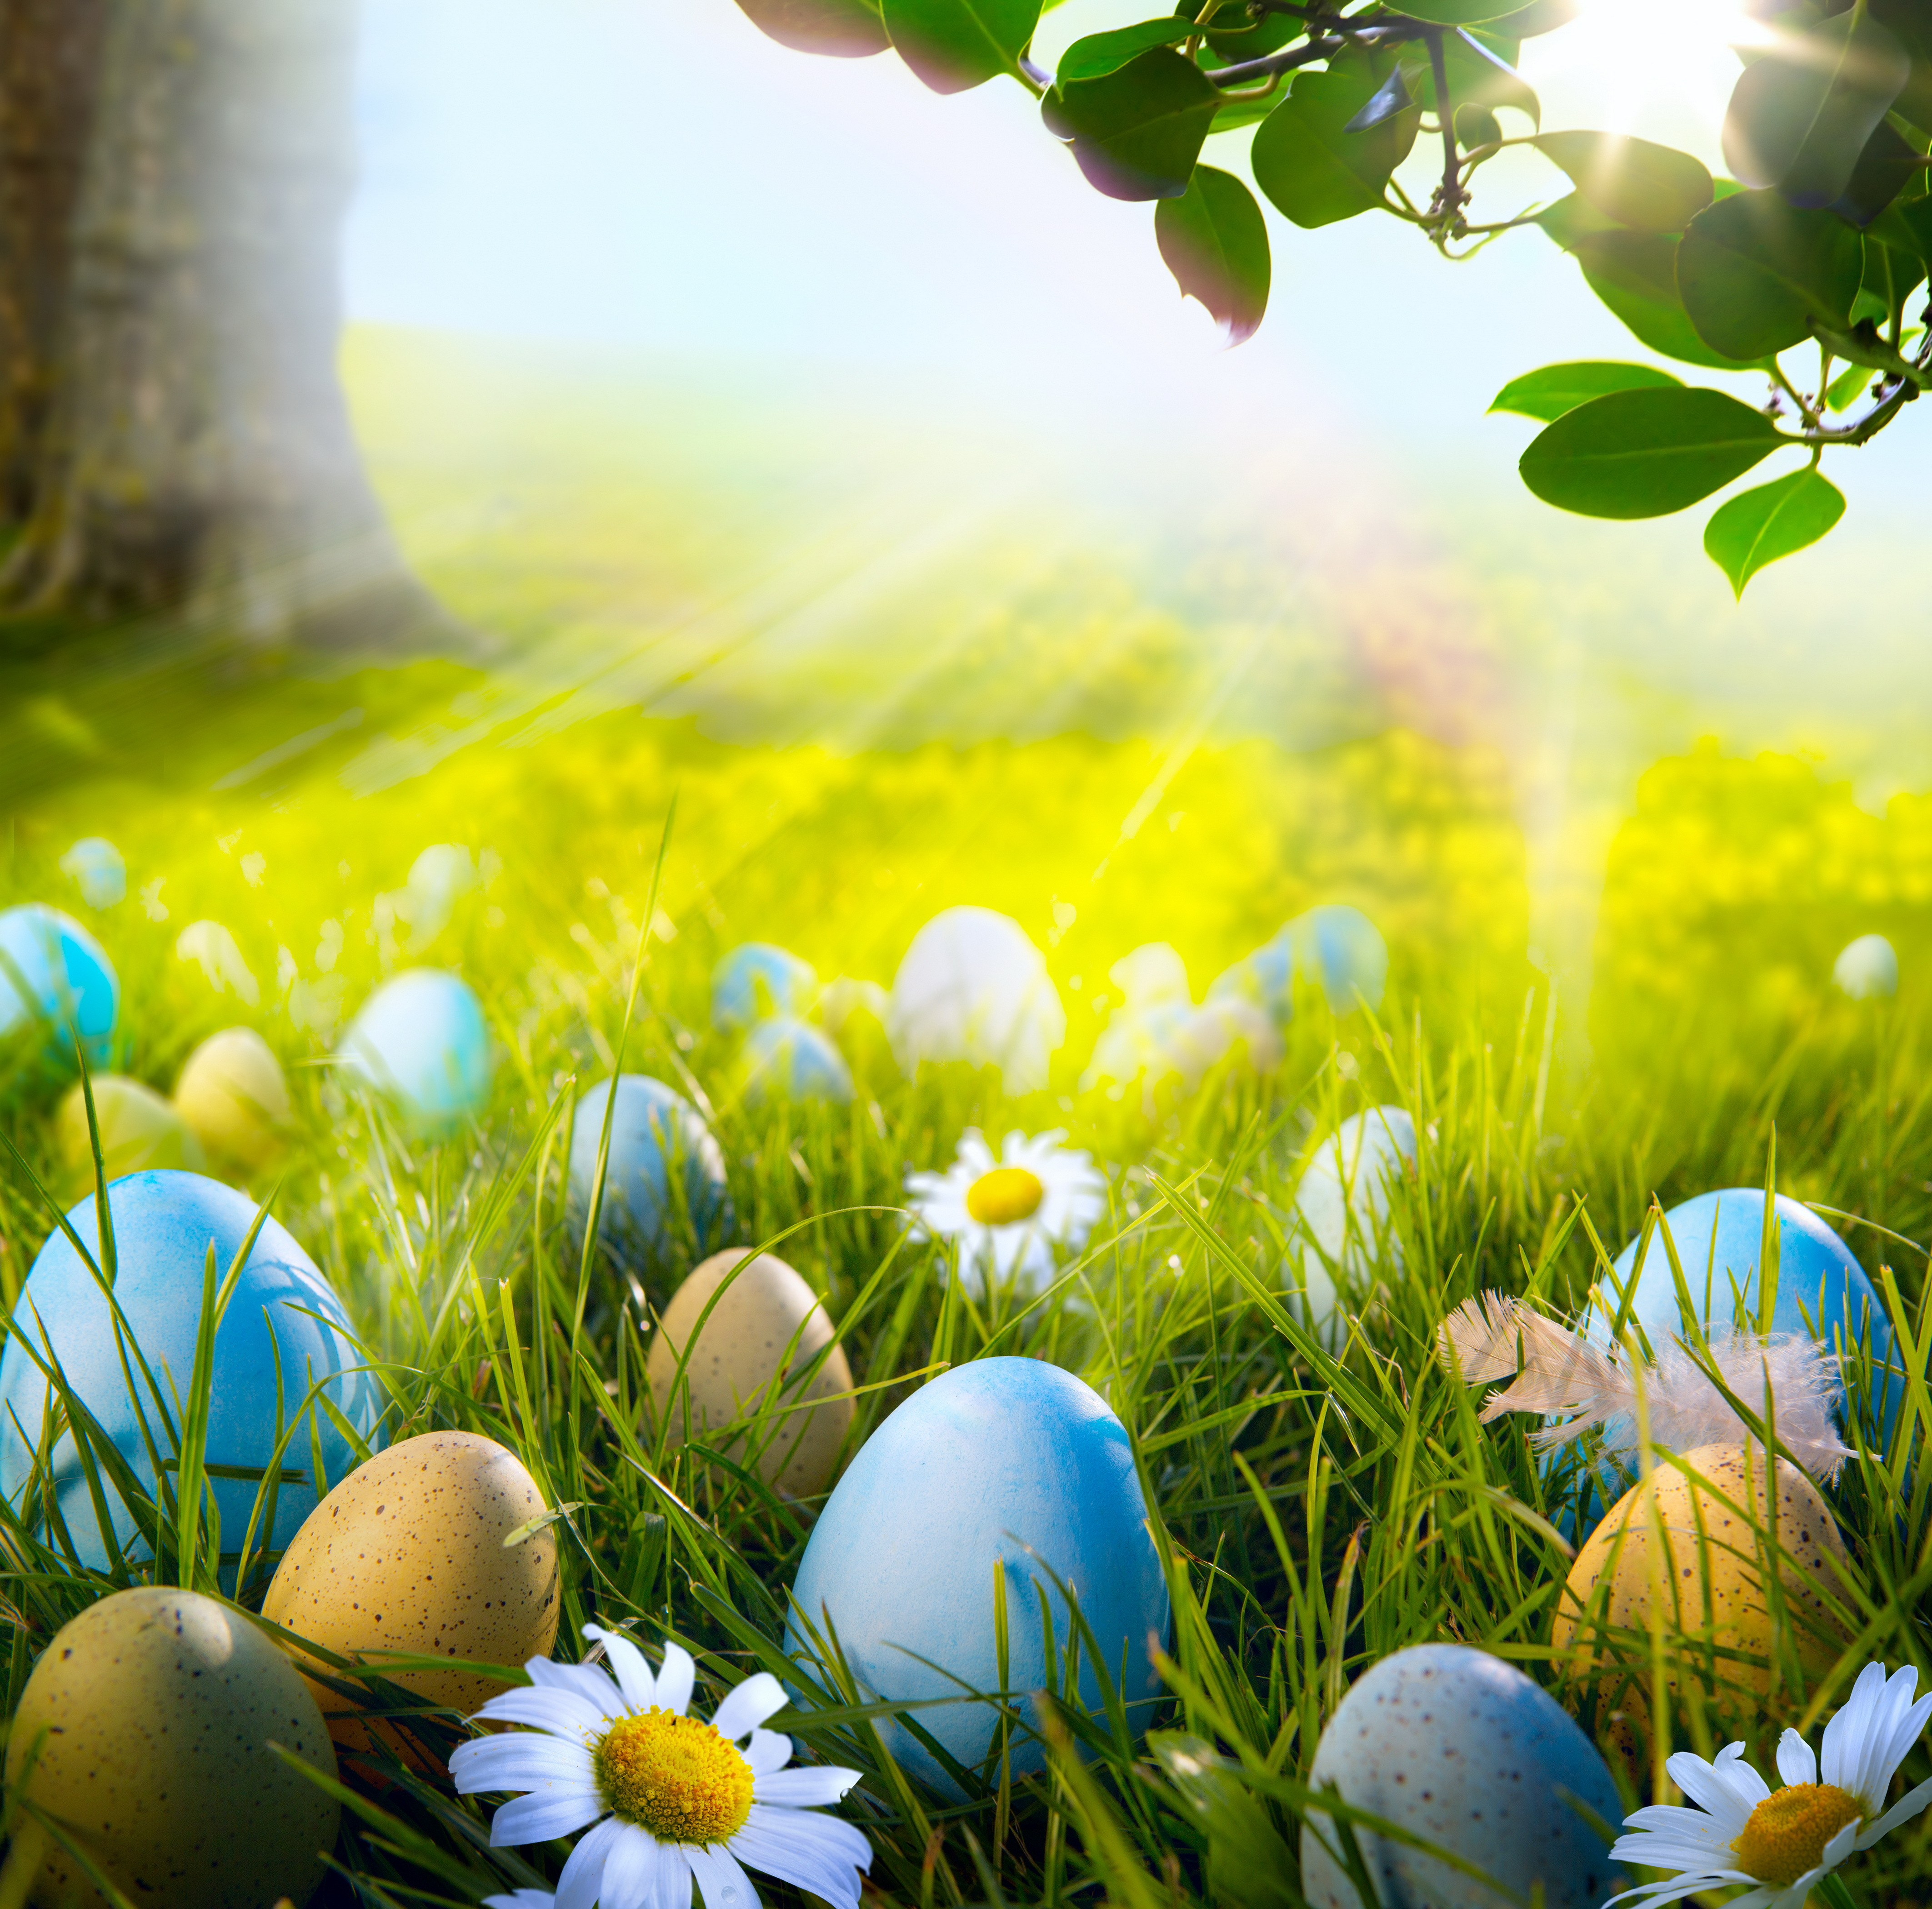 Download Free Wallpaper: Free Easter And Spring Wallpaper